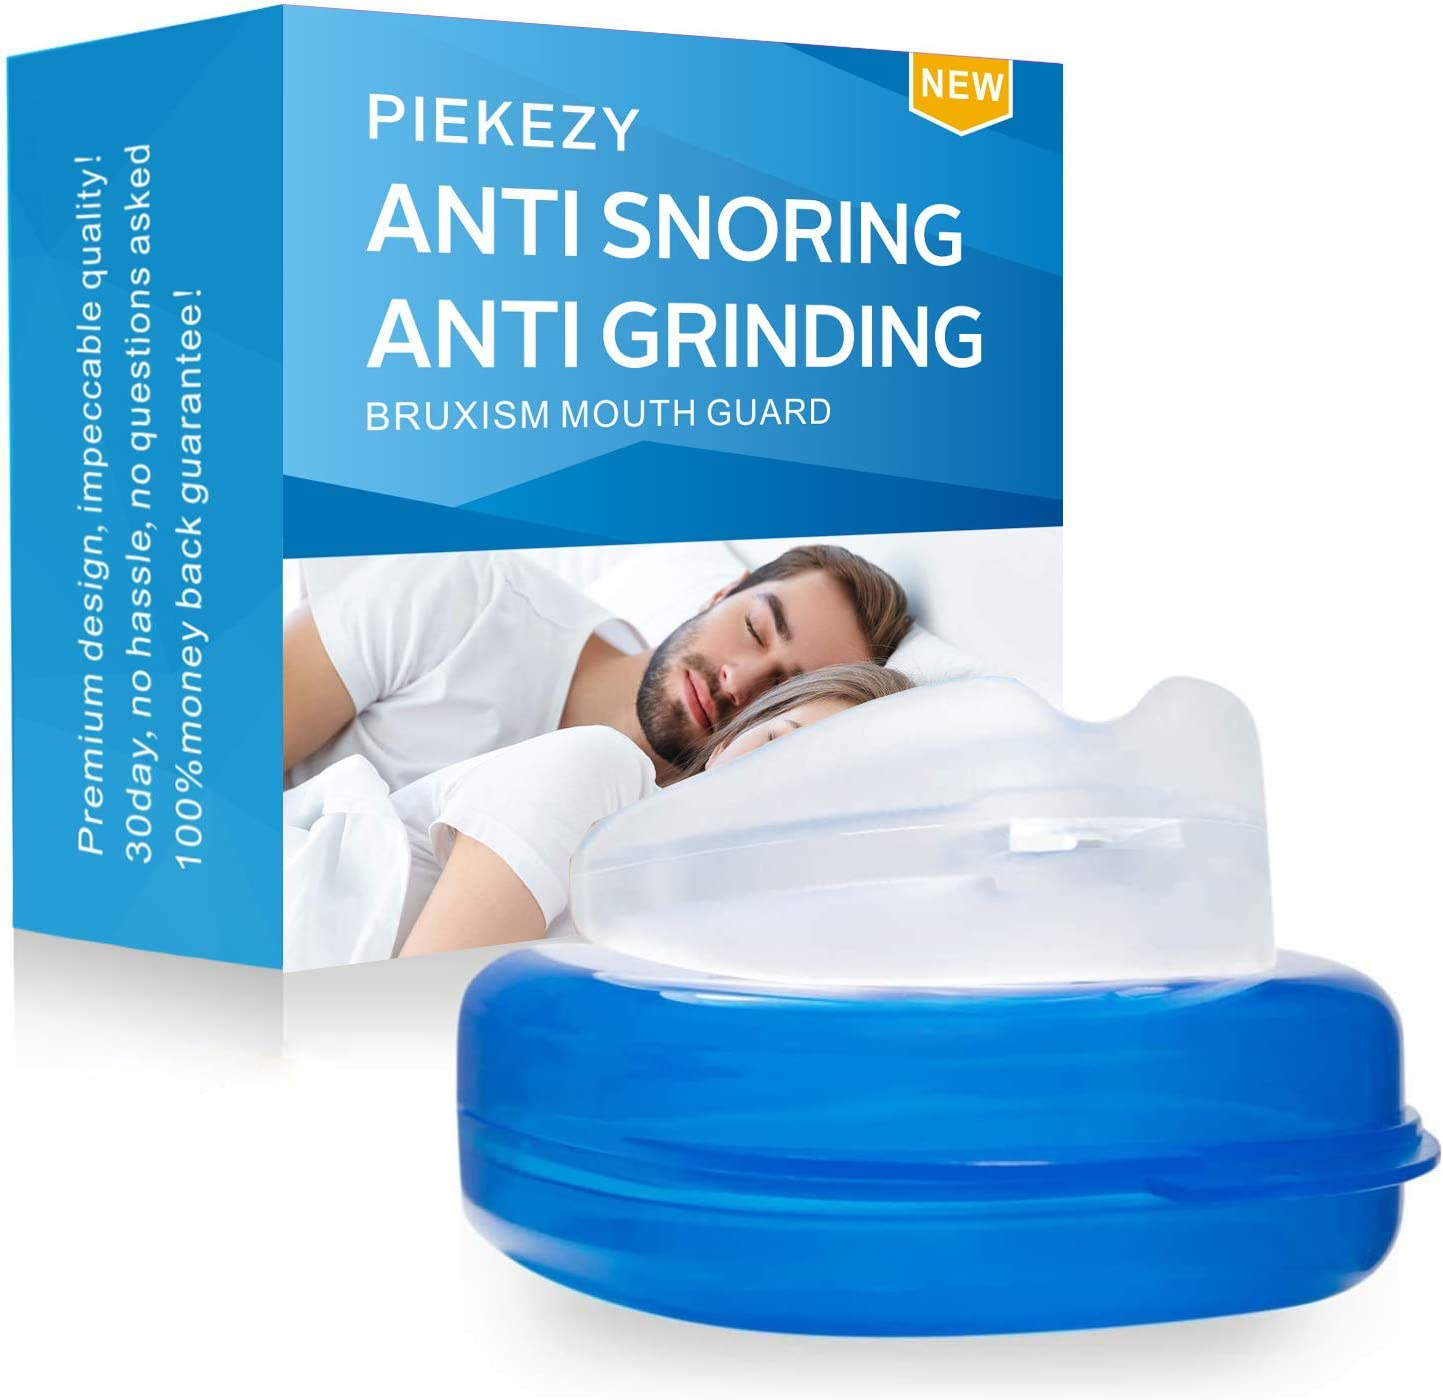 Snore Stopper Snoring Solution Ranking TOP1 Peacefully for At the price Sleep Good